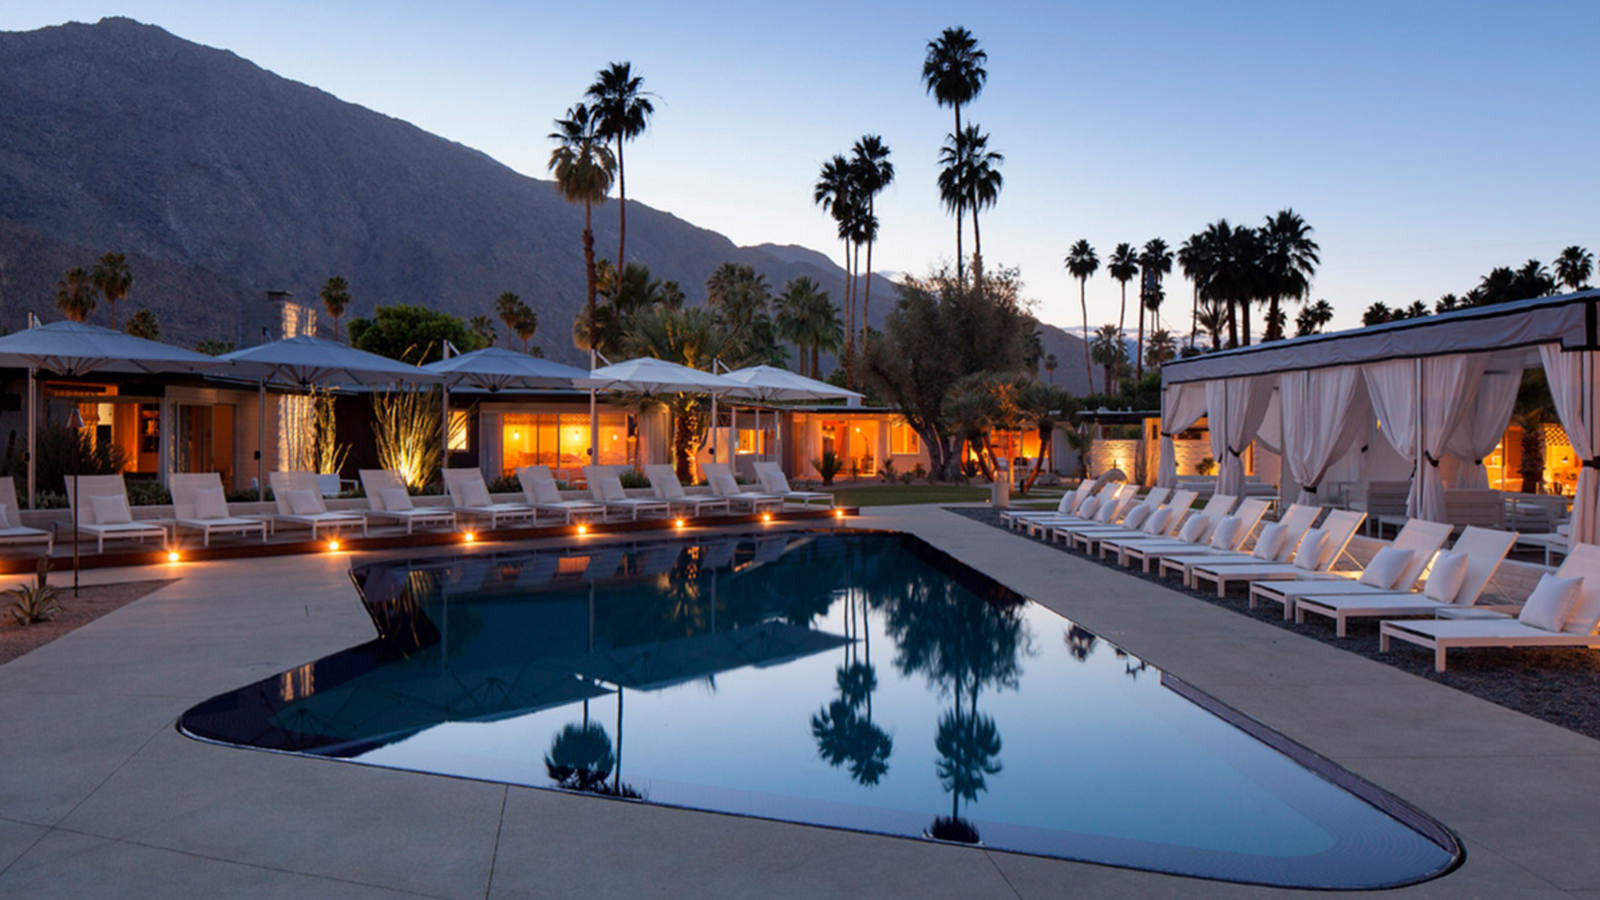 25 Best Boutique Hotels in America   Gear Patrol 1600x900